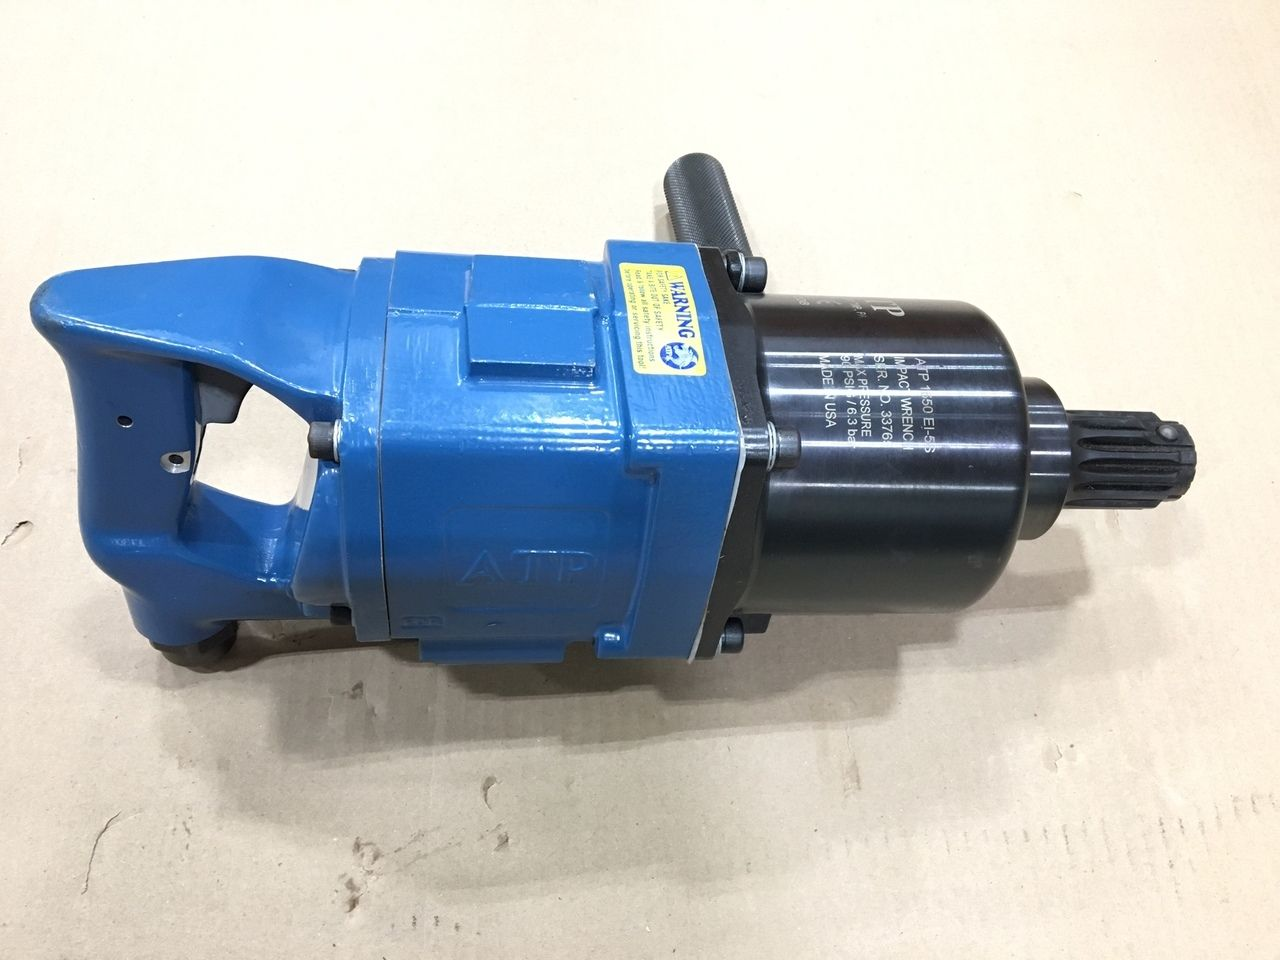 E Air Tool 1 Pneumatic Impact Wrench Air tools